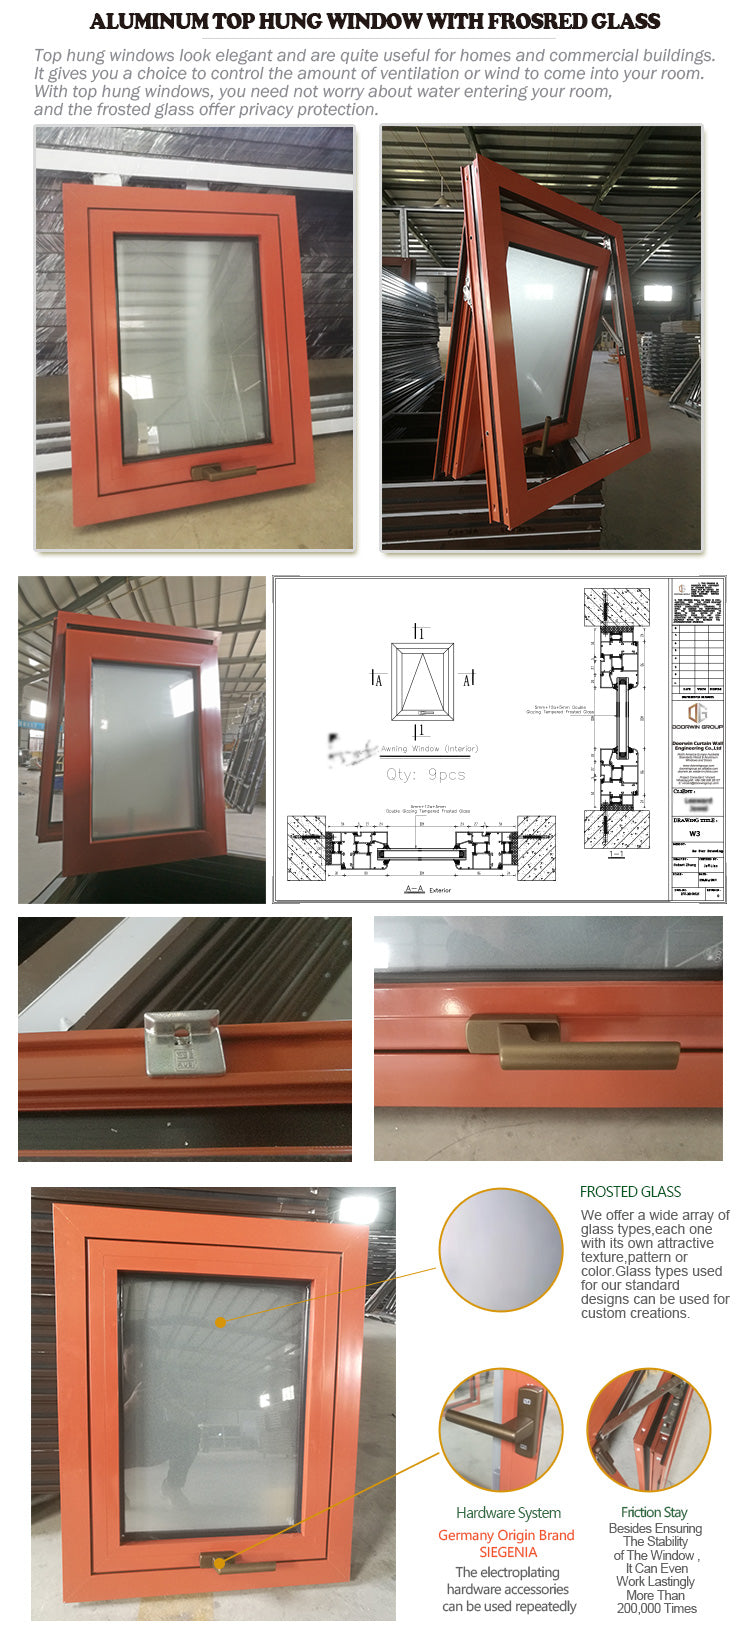 awning-window_01